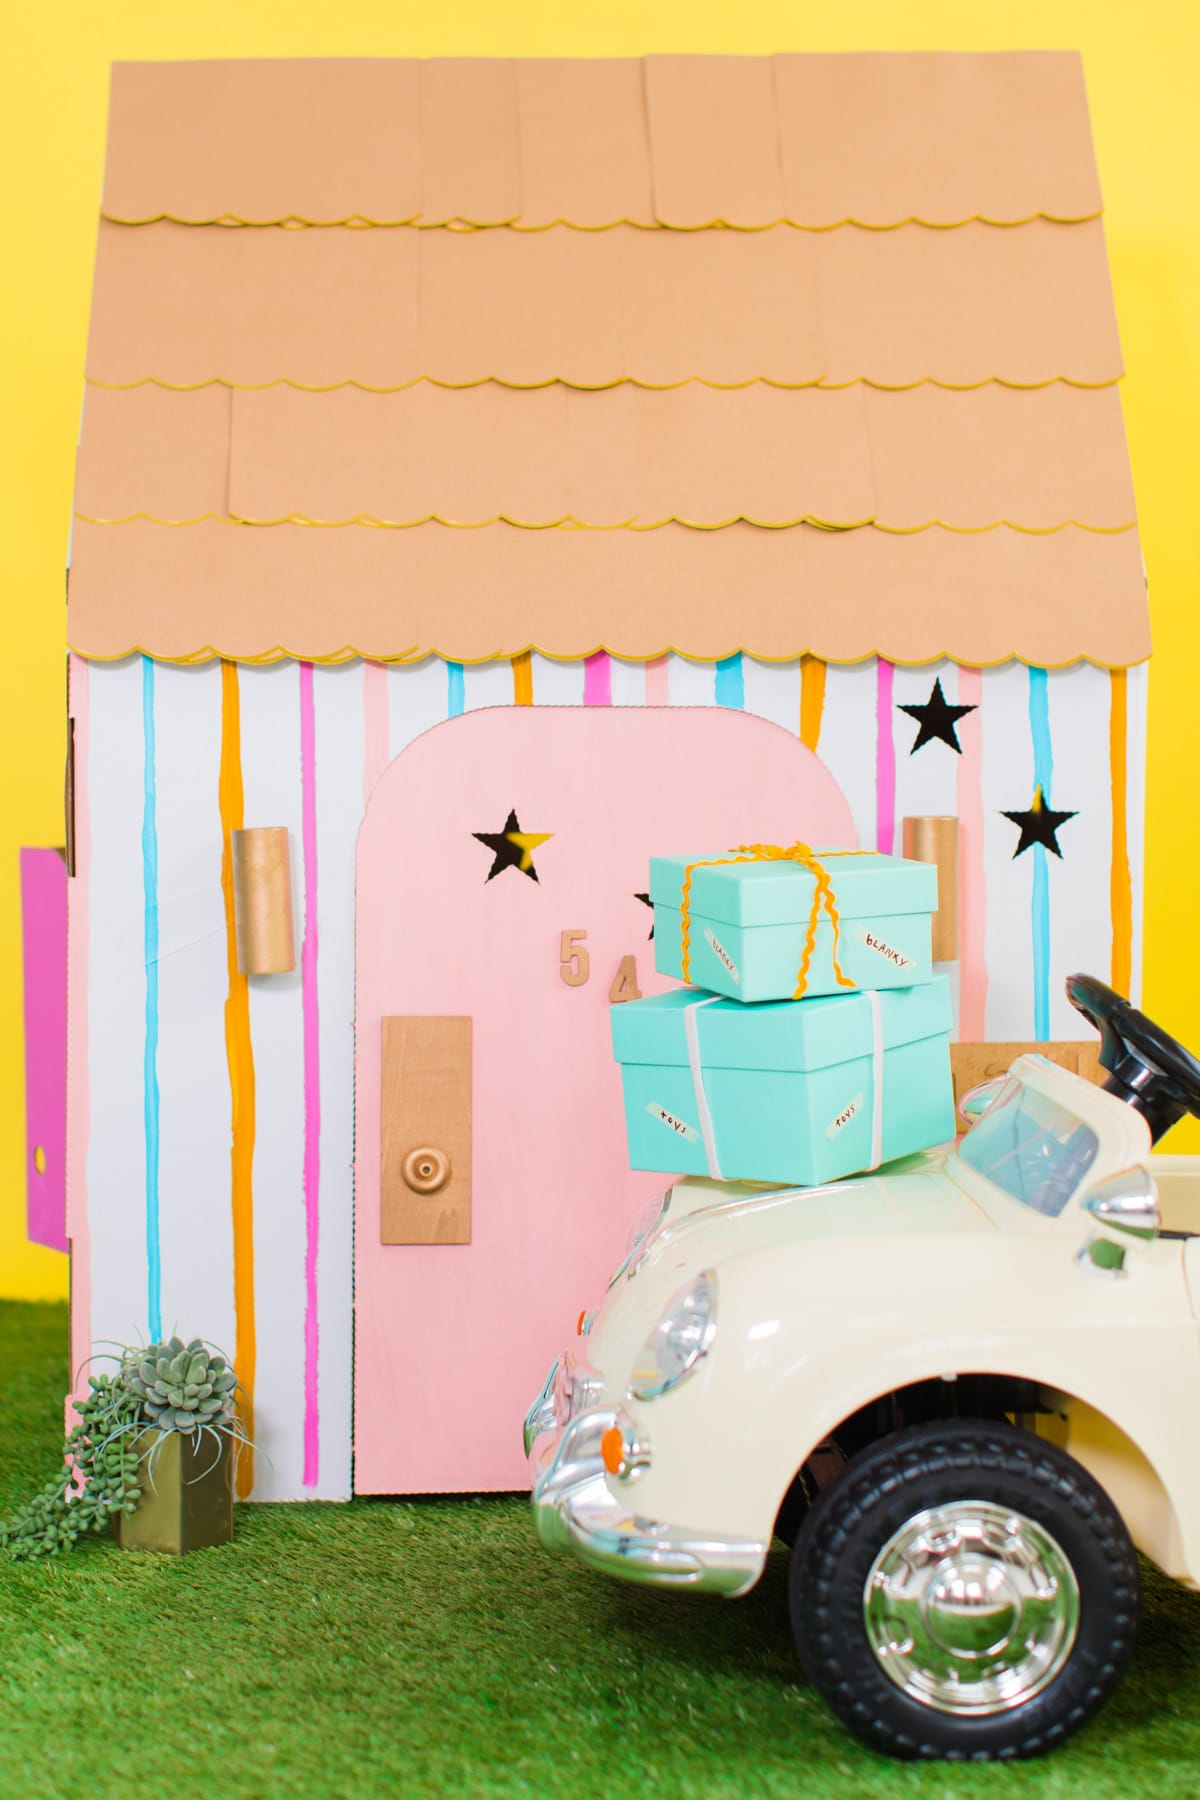 The cutest baby car you've ever seen! Sugar & Cloth Casa: How We Went About Buying A House to Renovate by top Houston lifestyle blogger Ashley Rose of Sugar & Cloth #renovate #home #interiors #buying #house #fixerupper #howto